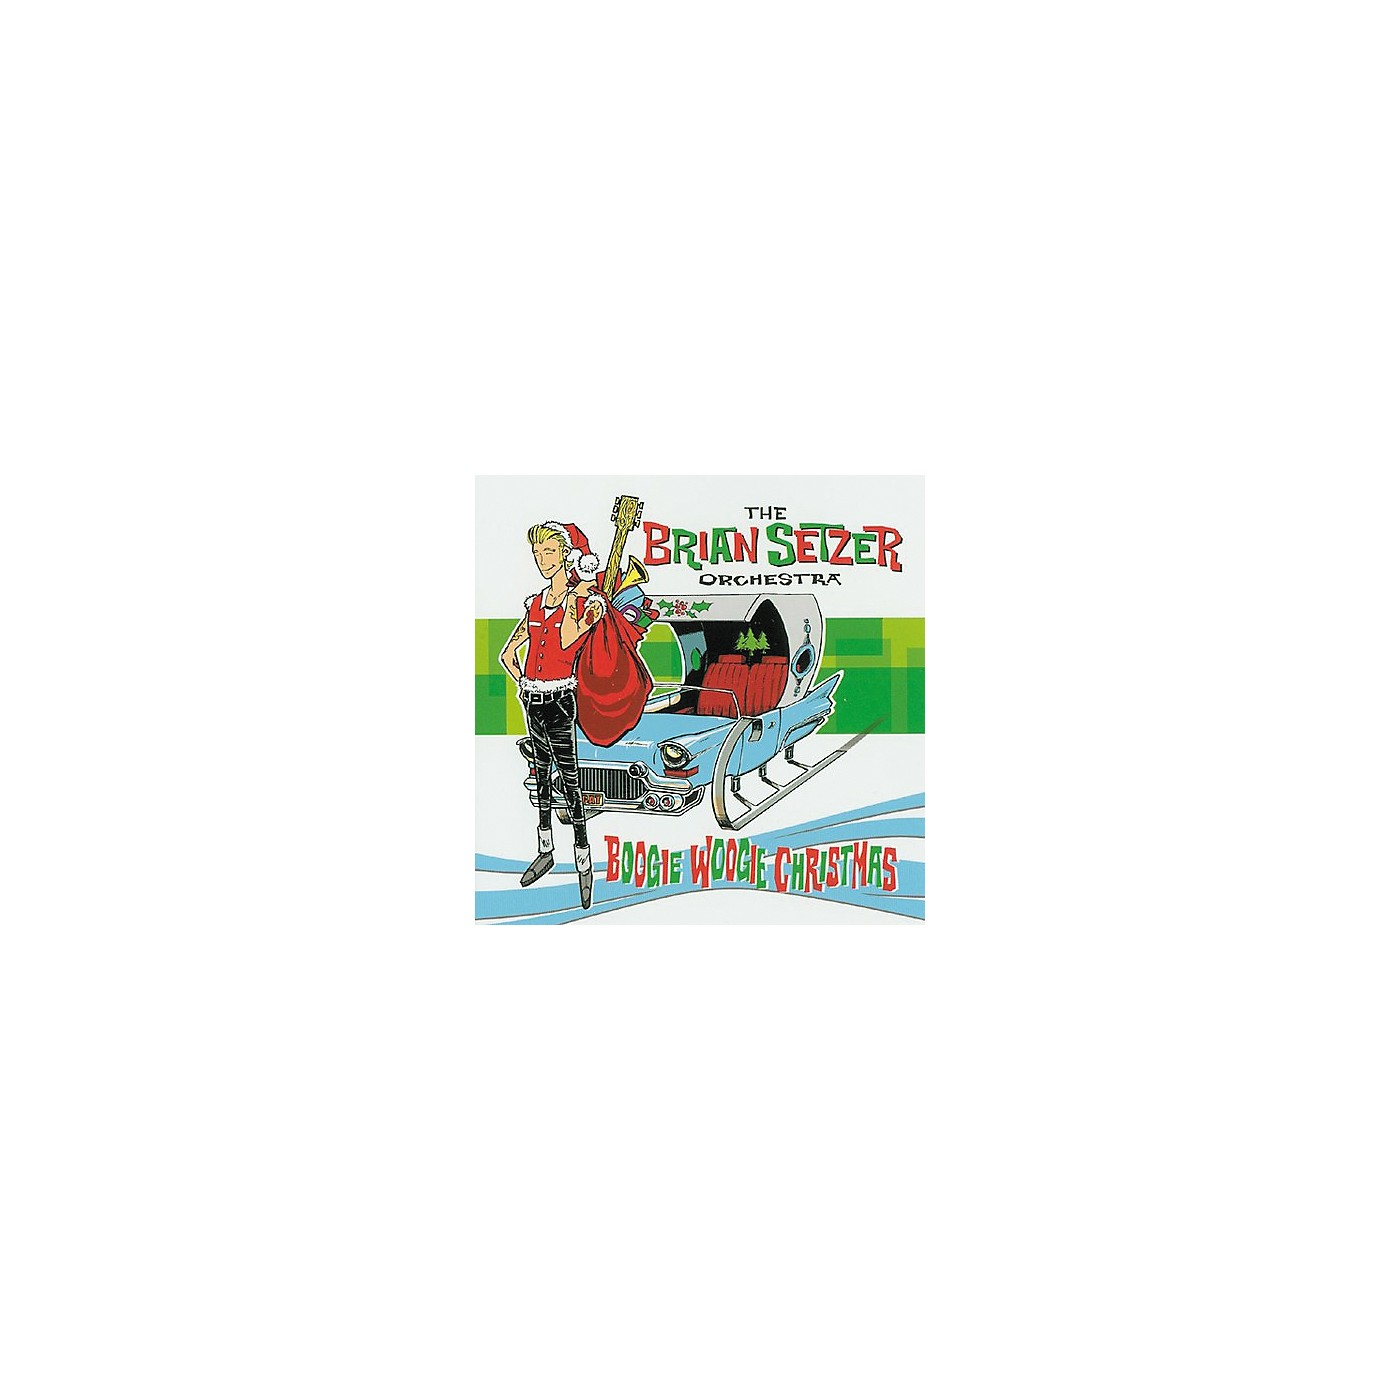 Gretsch The Brian Setzer Orchestra - Boogie Woogie Christmas Audio (CD) thumbnail